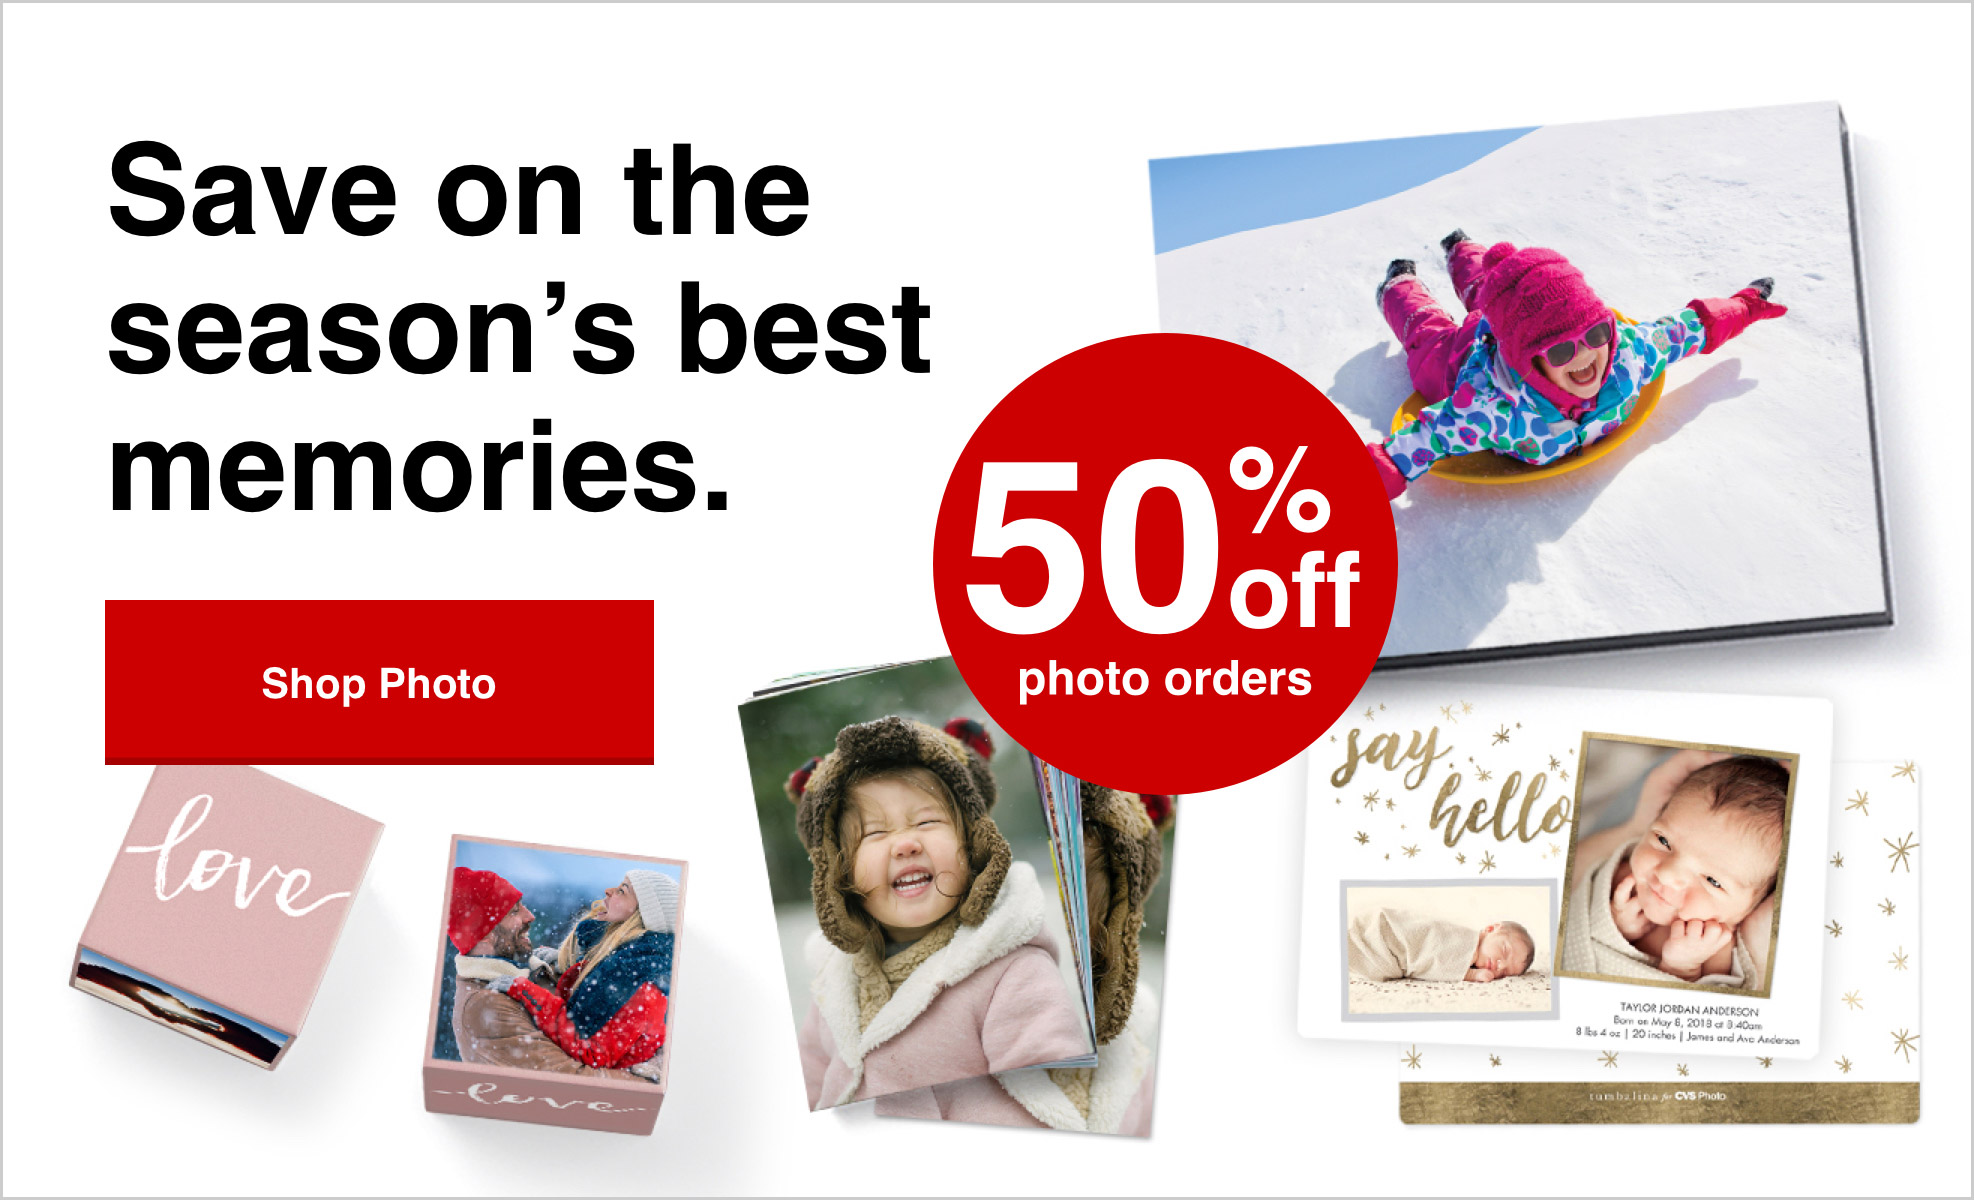 This week only, 50% off all Photo orders with Promo Code: AMAZING50 Offer ends 2/27/21.